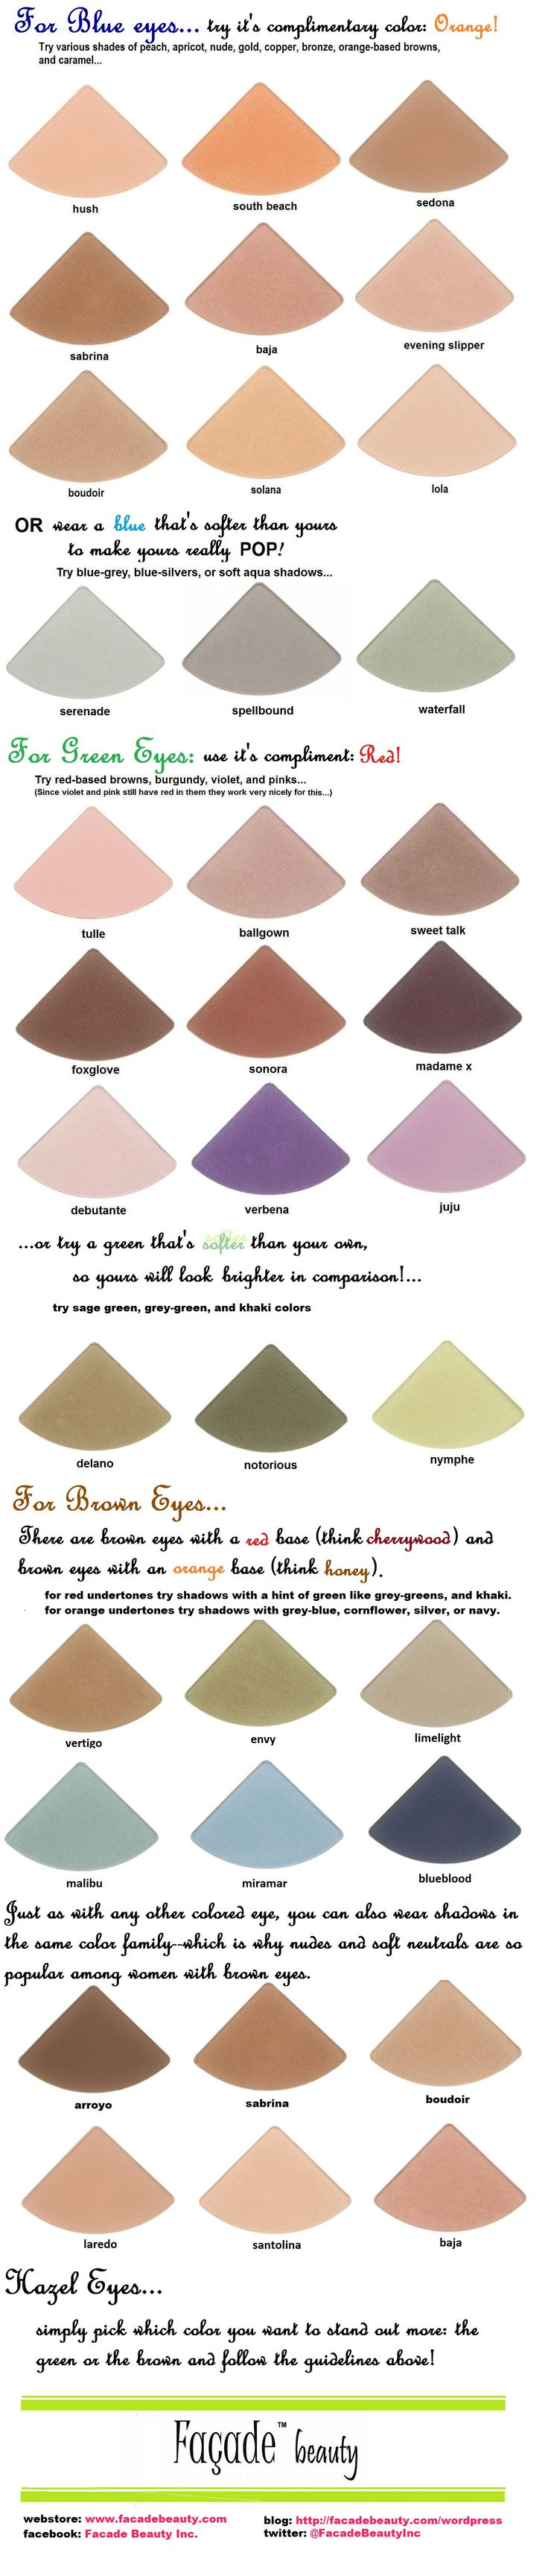 Excellent chart for best eyeshadows for blue, green, brown & hazel eyes. I will say though, that sometimes picking a shadow the same color as your eye creates a dull kind of plain look. Its not as attractive as using a complimentary color for your eyes.                                                                                                                                                     More